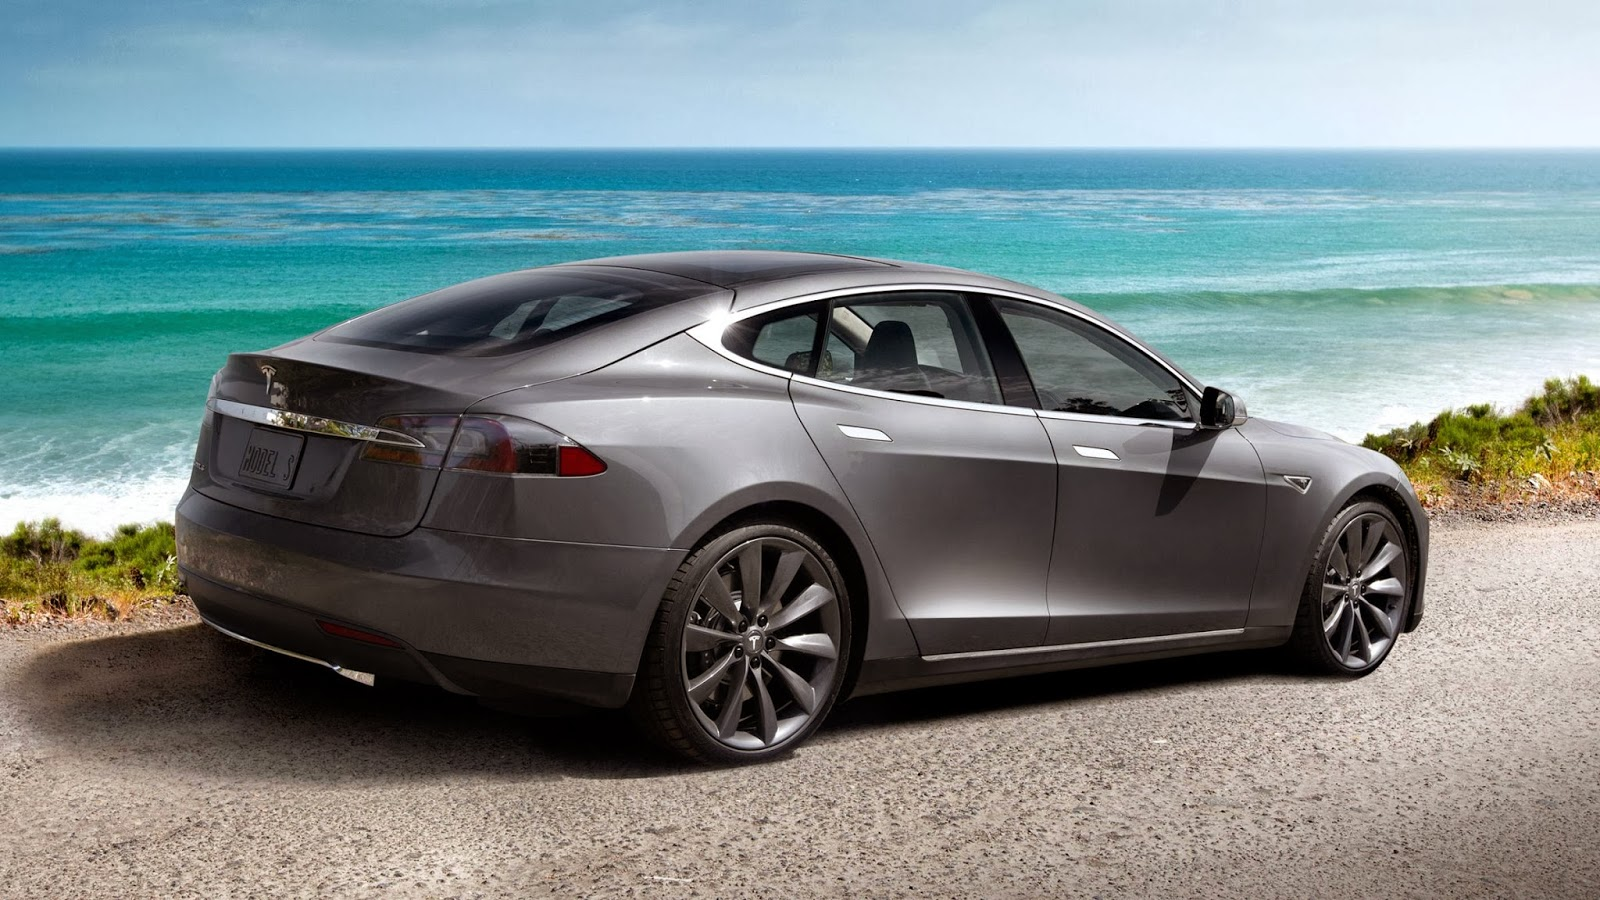 Tesla Model S electric car the most efficient and powerful